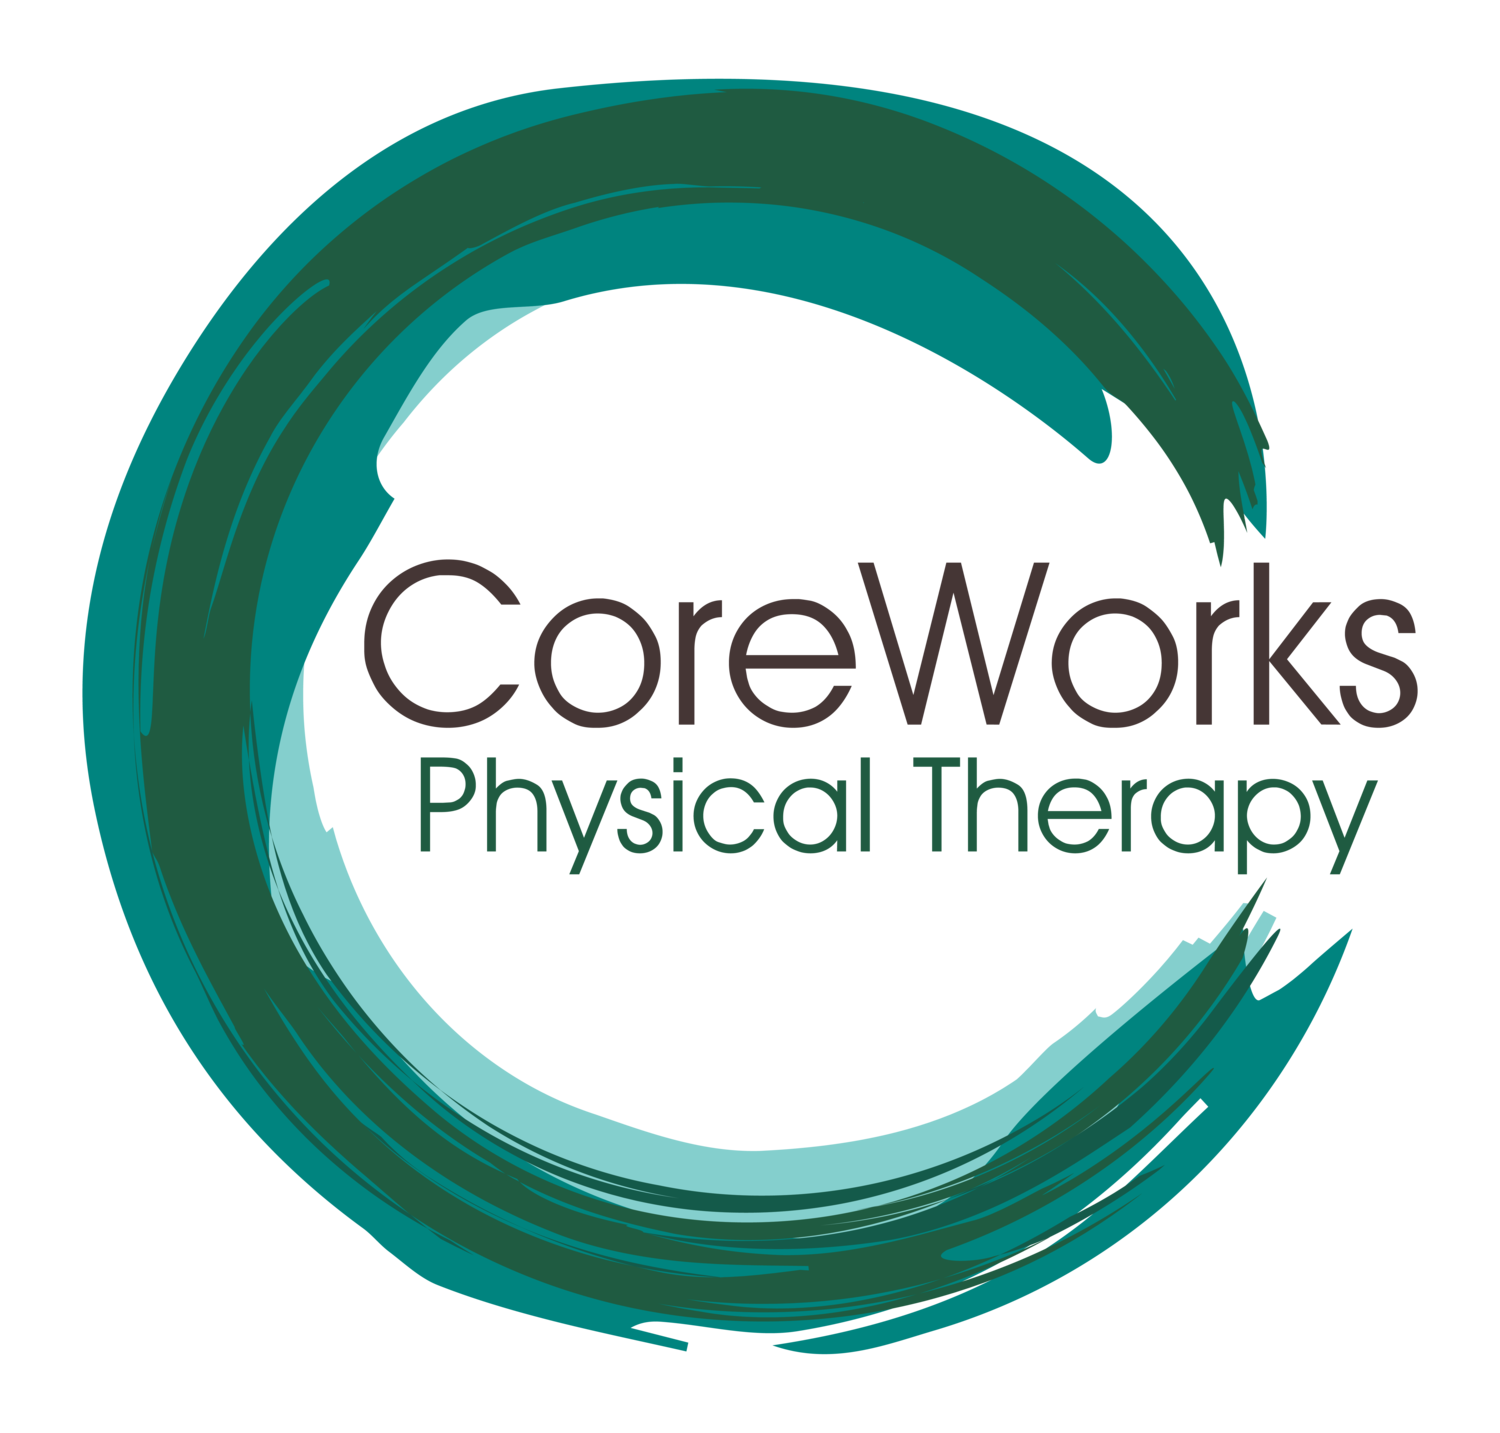 CoreWorks Physical Therapy